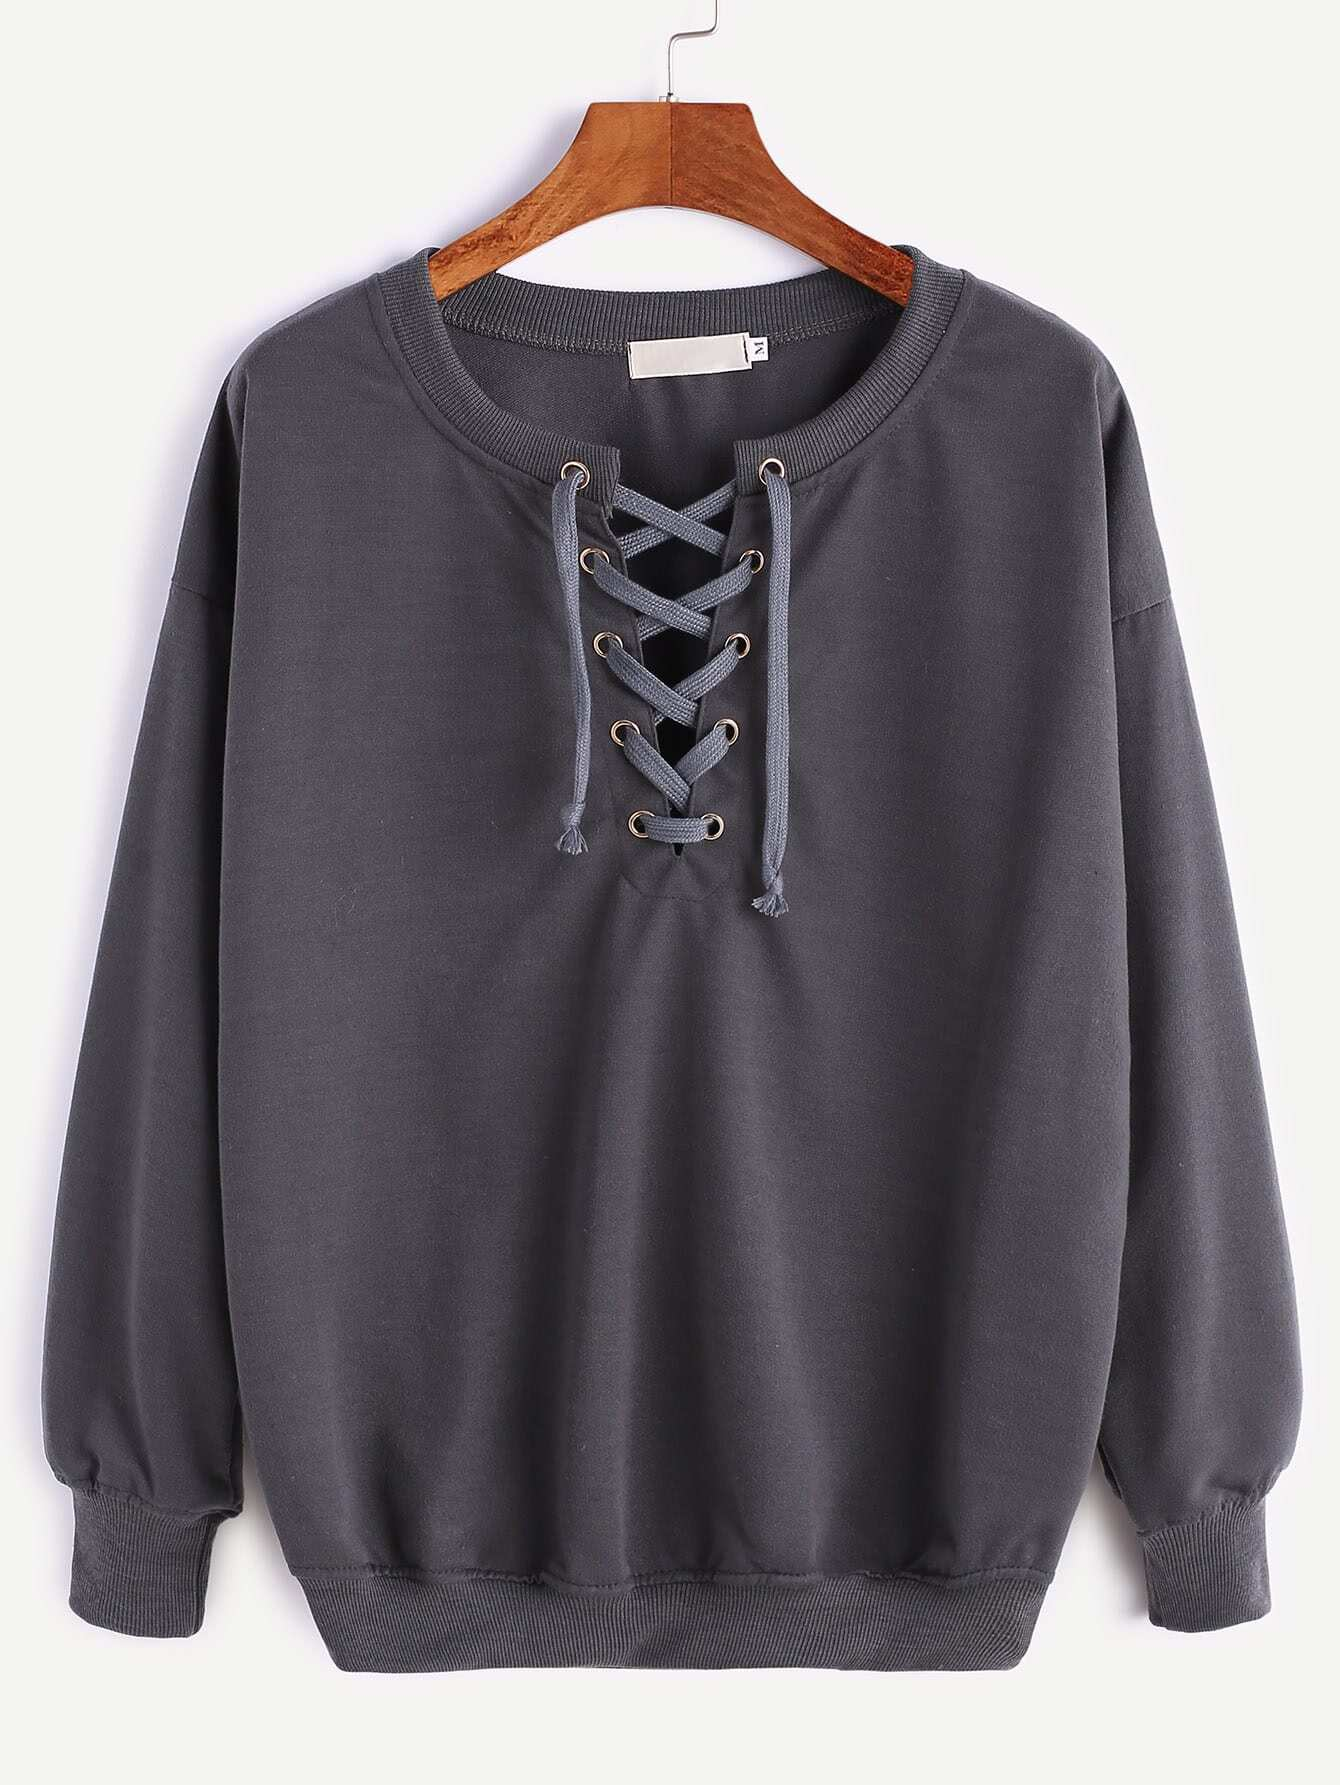 Dark Grey Ribbed Trim Drop Shoulder Lace Up Sweatshirt sweatshirt161124302